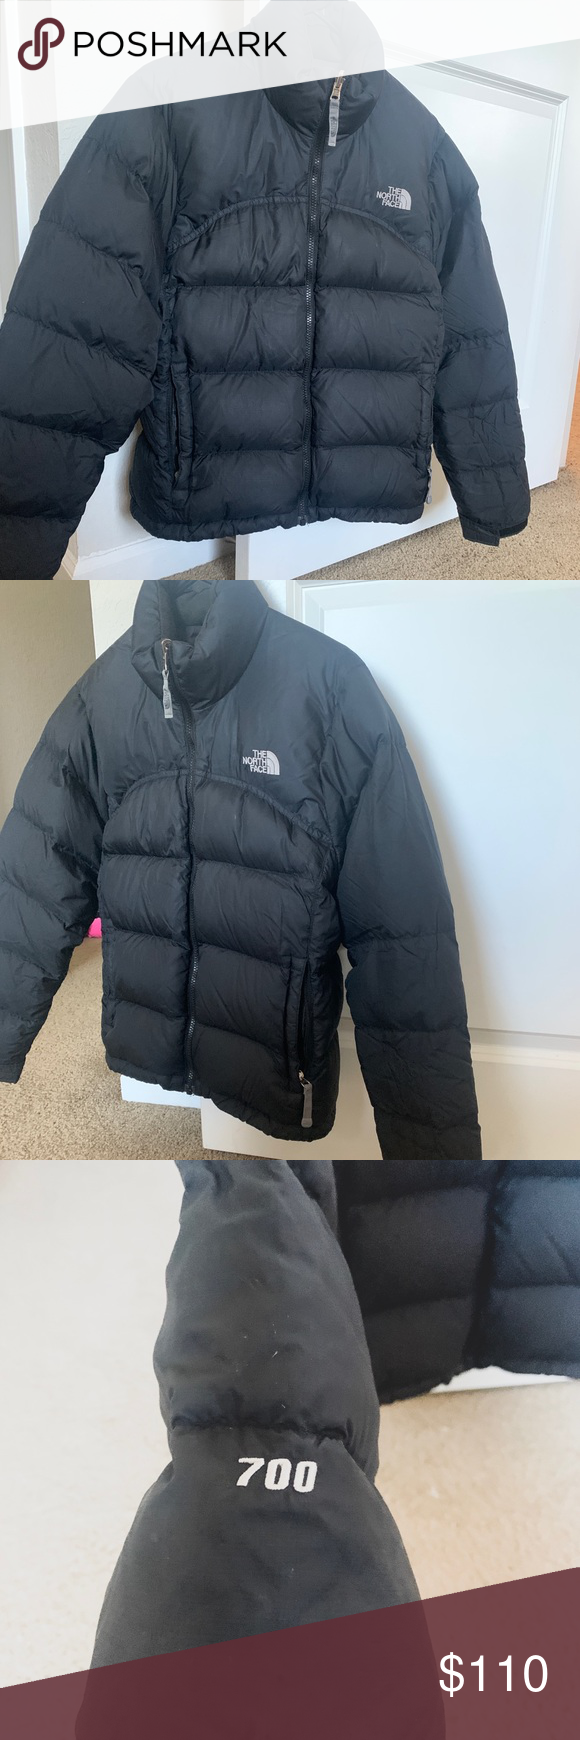 Northface Down Puffer Jacket 700 The North Face Puffer Jackets Puffer [ 1740 x 580 Pixel ]